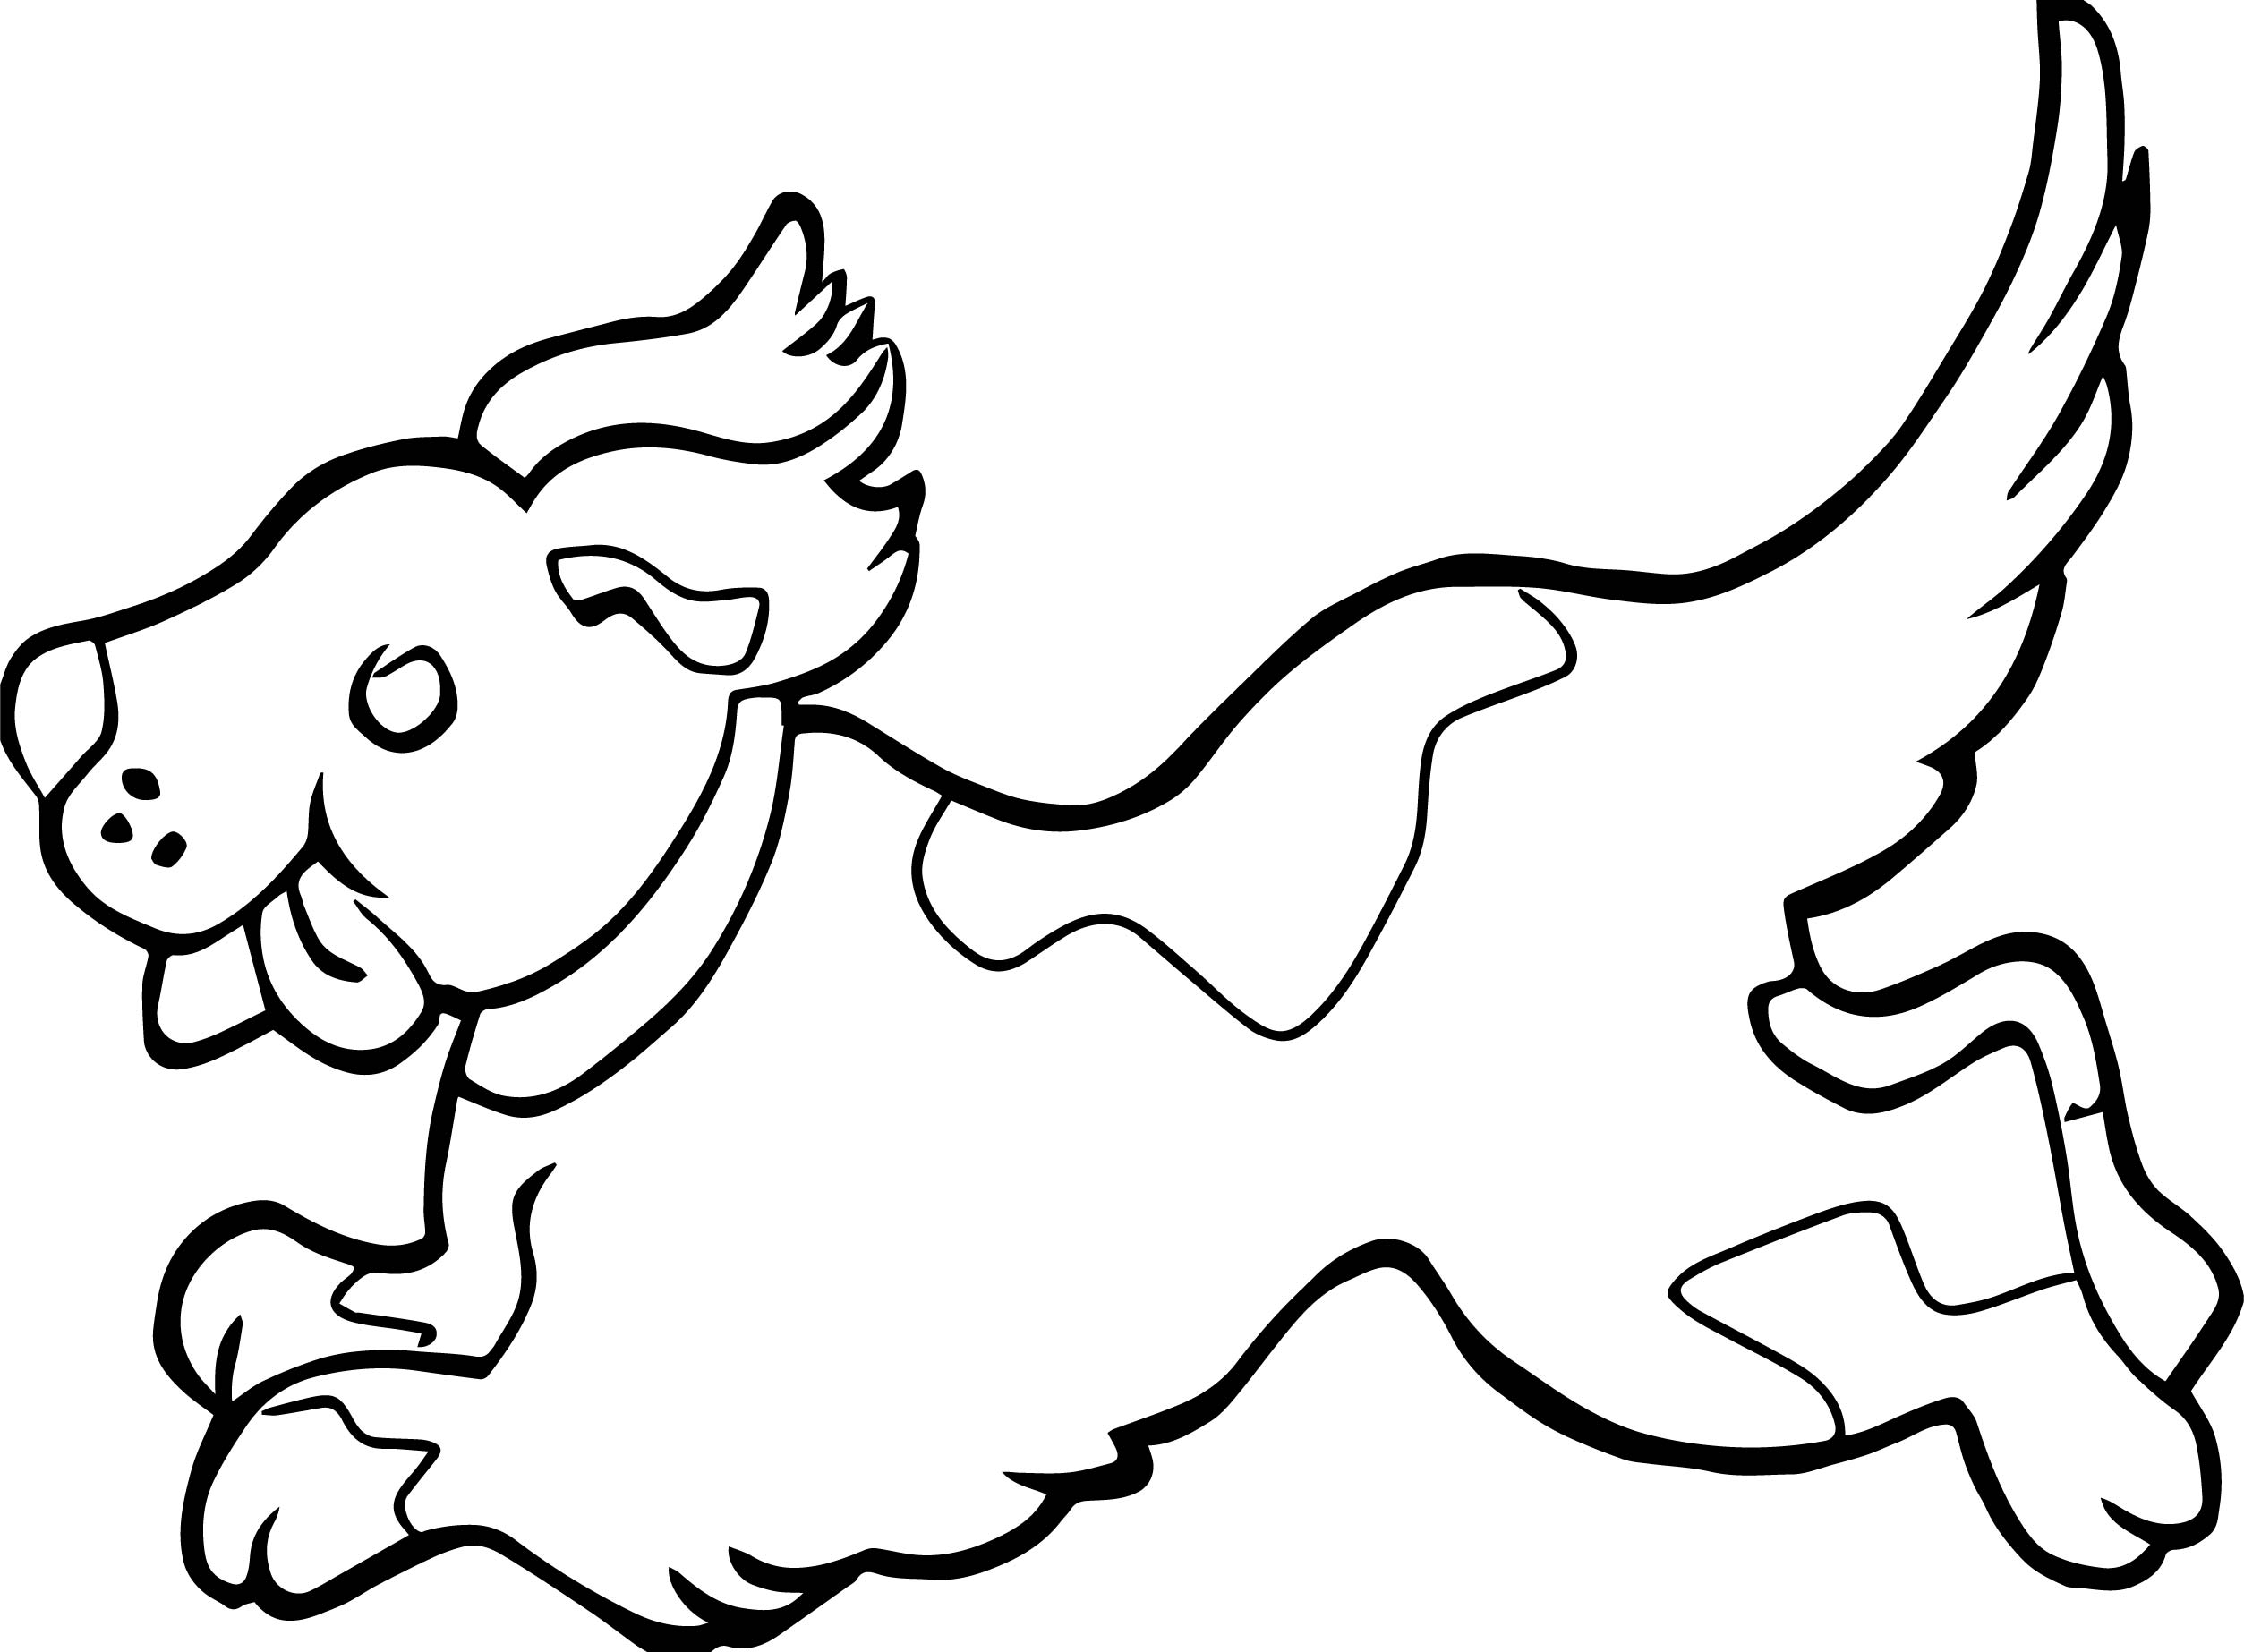 Running Puppy Dog Coloring Page | Wecoloringpage.com